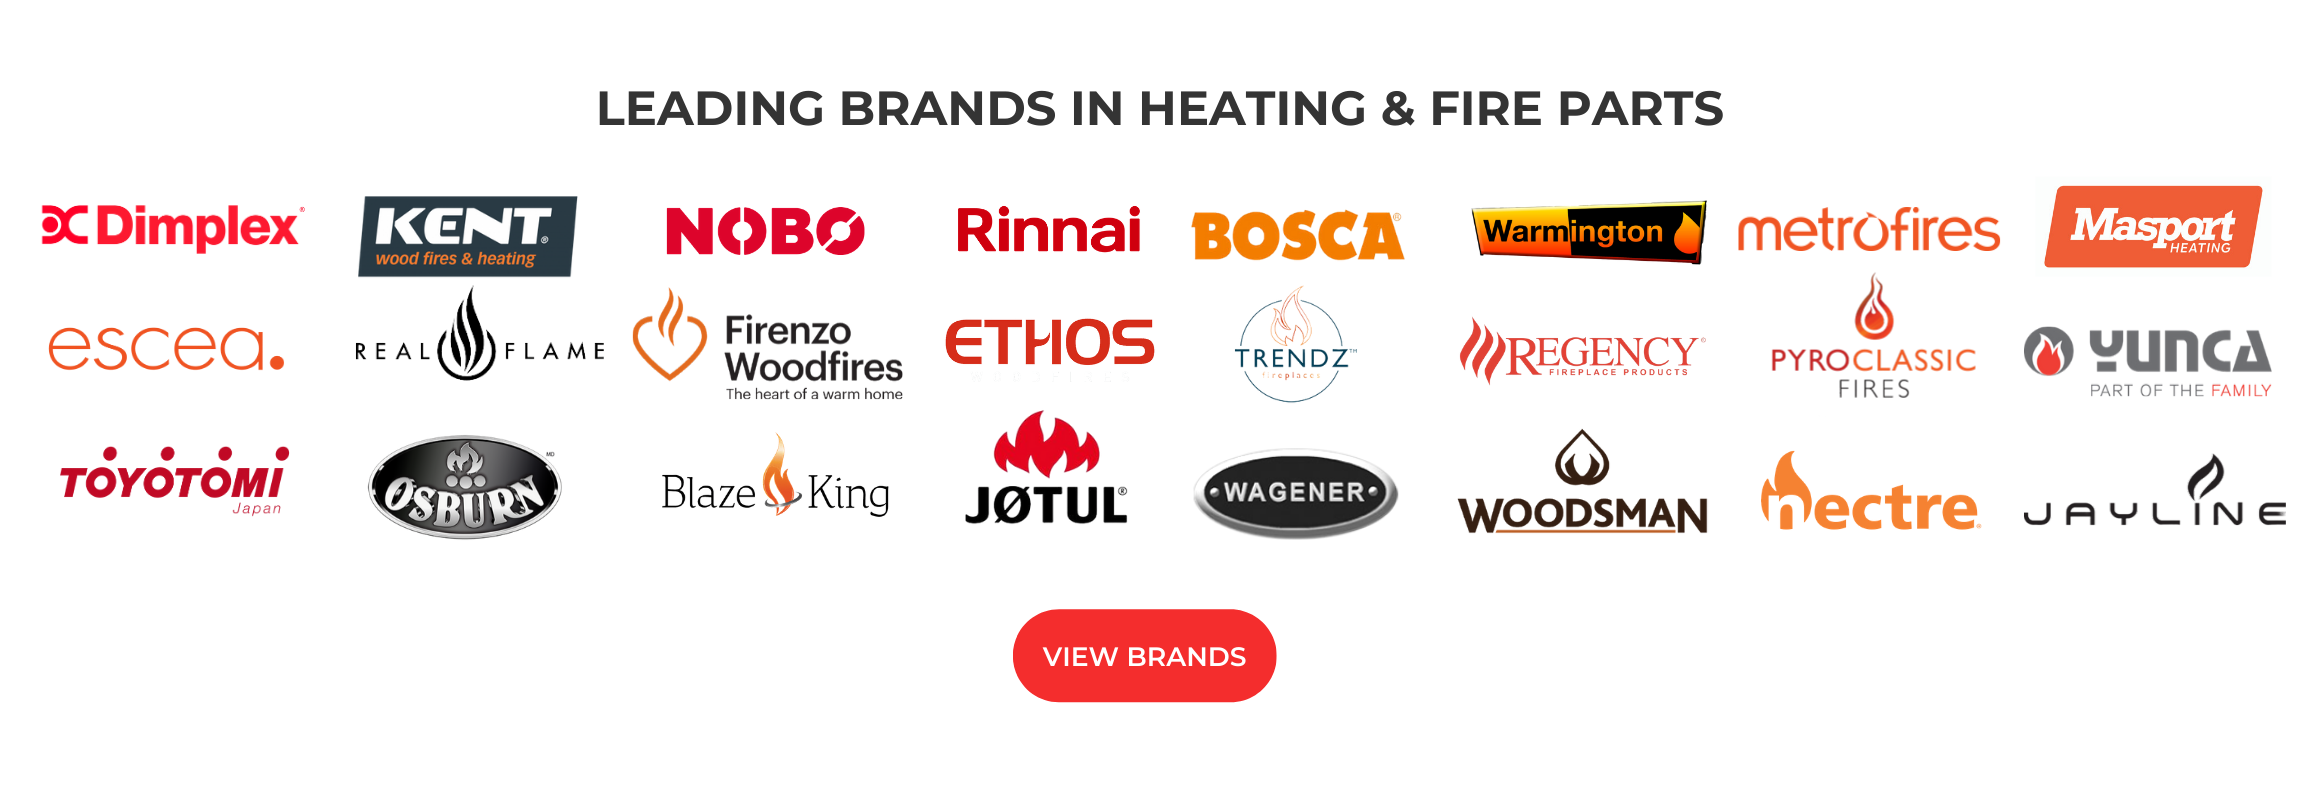 leading heating and fire brands